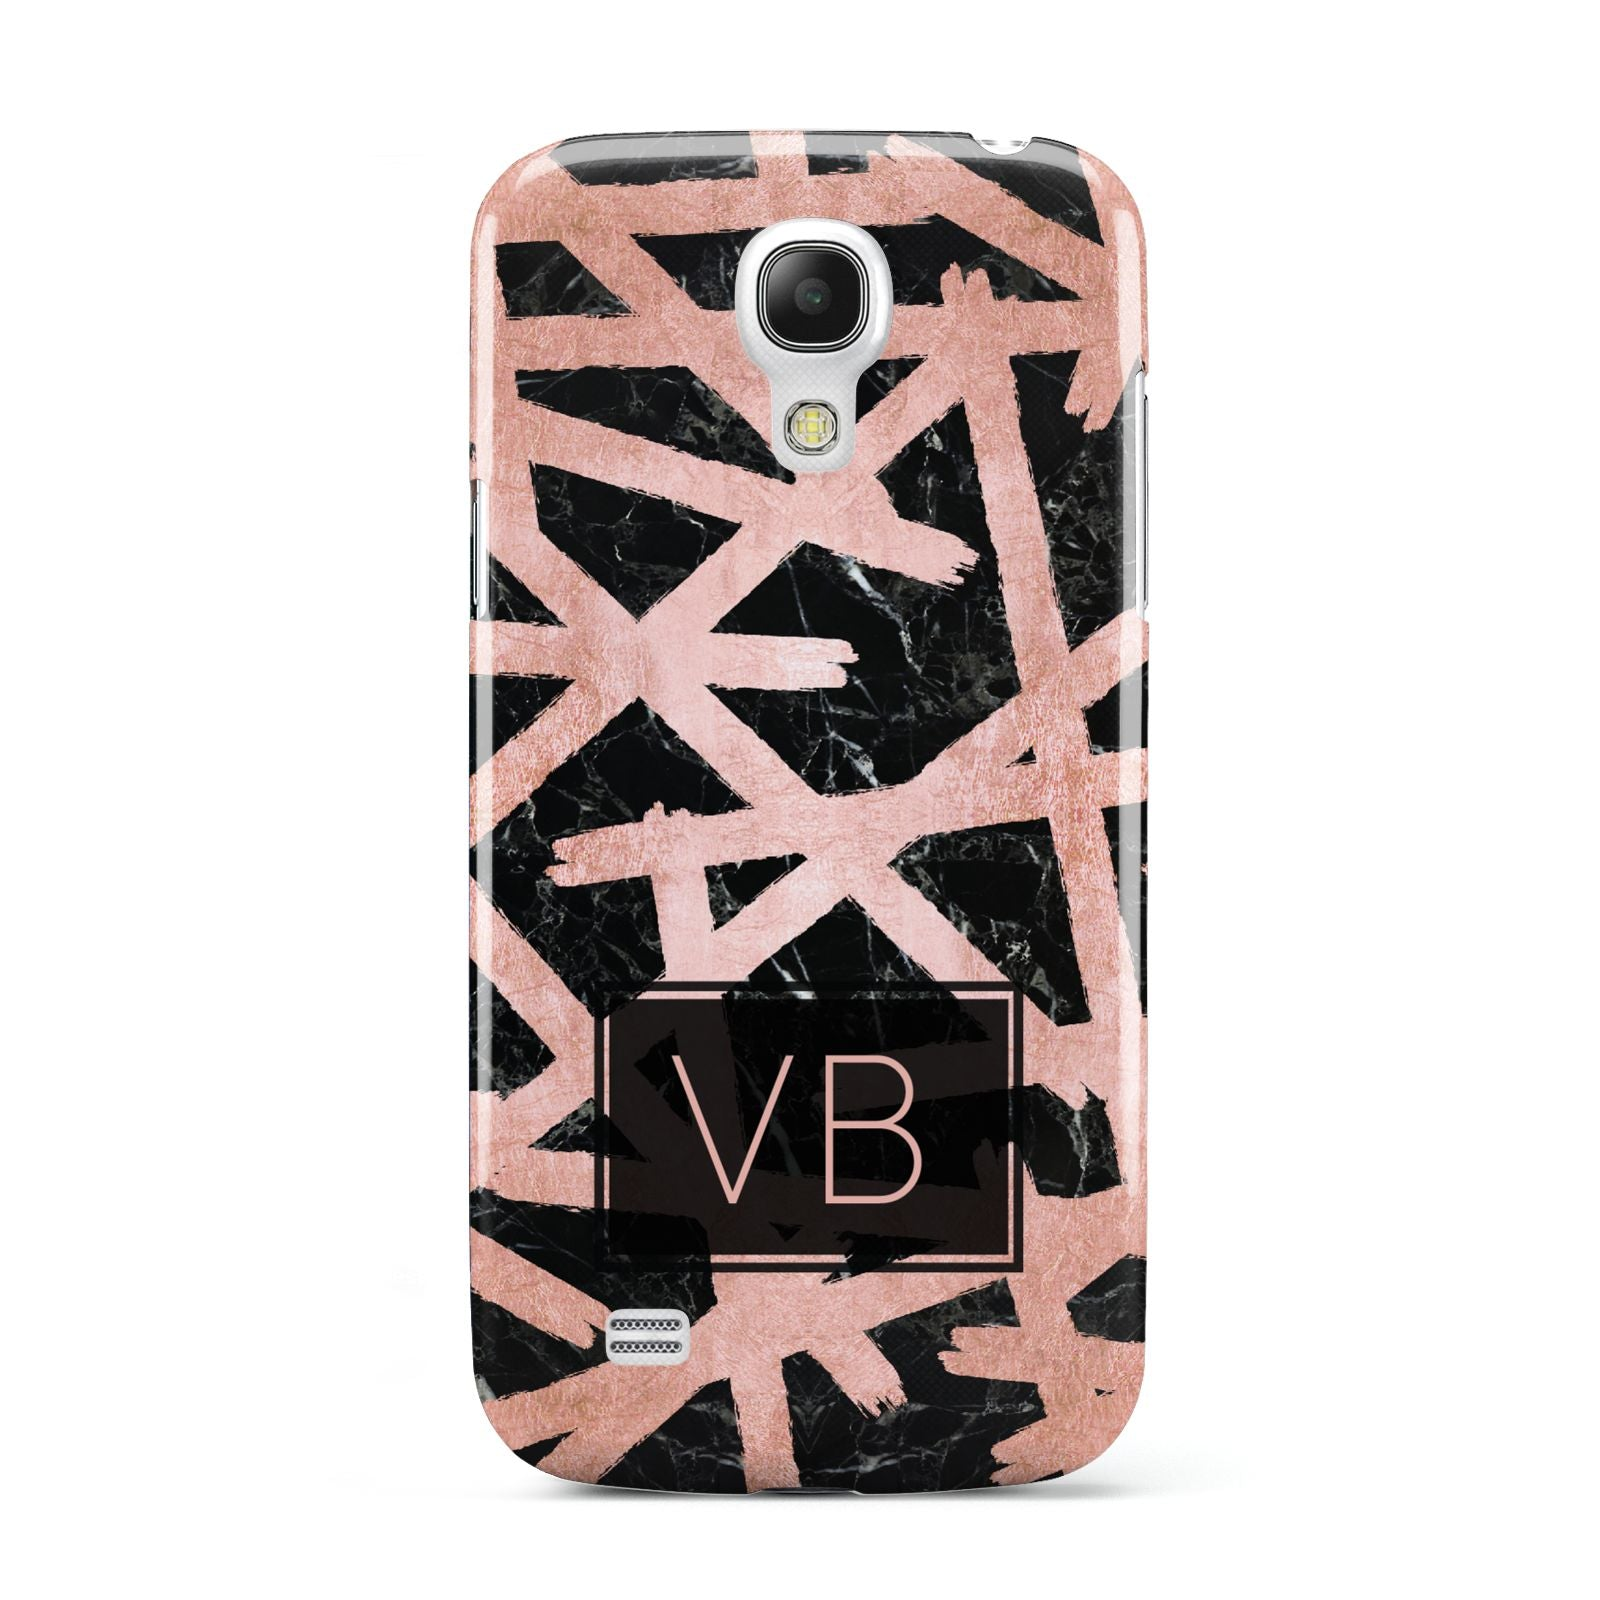 Personalised Rose Gold Effect Samsung Galaxy S4 Mini Case